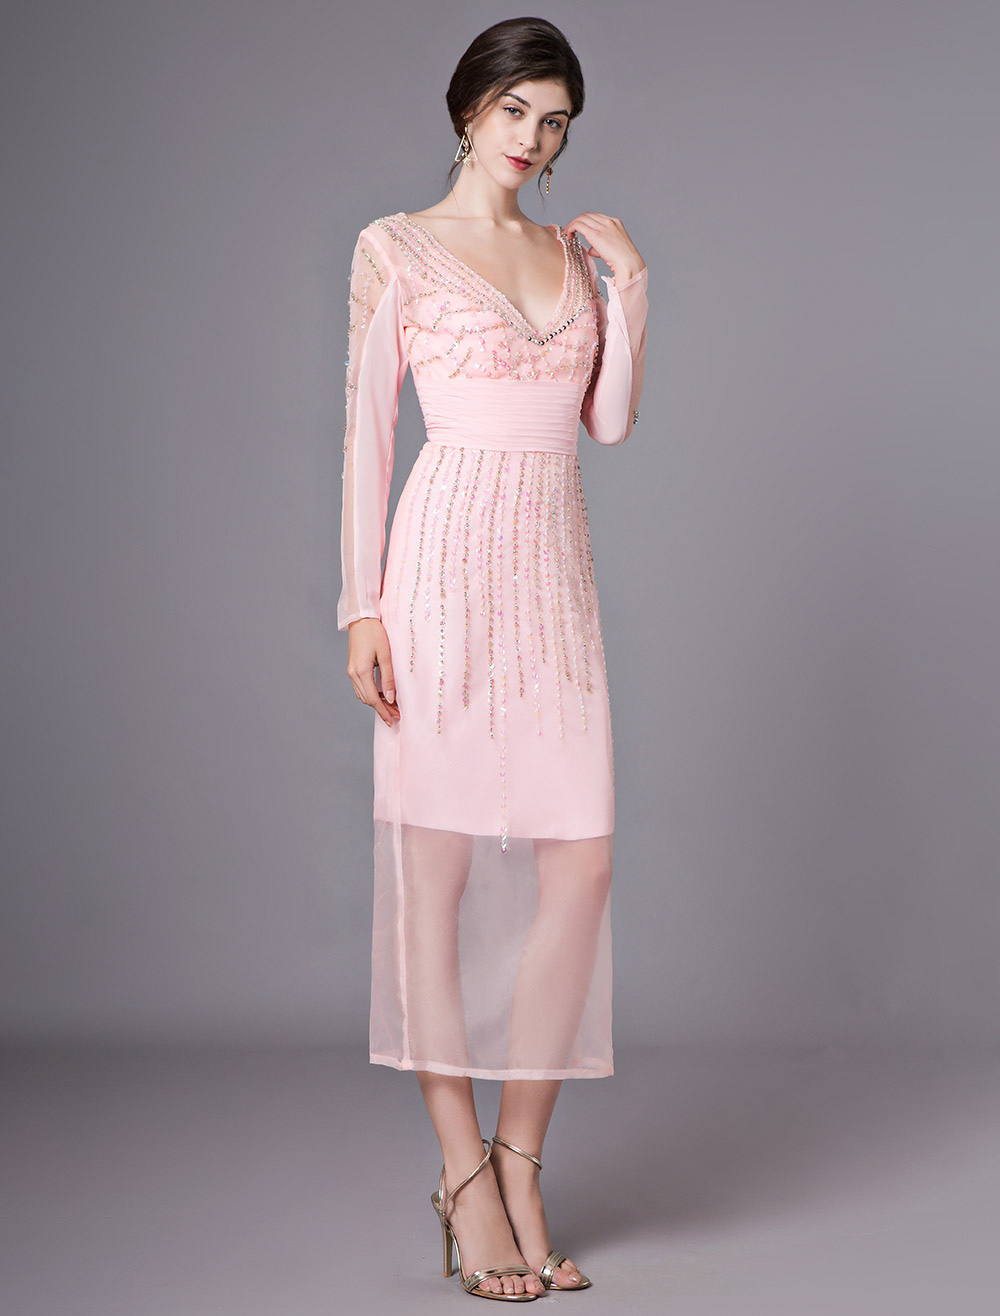 Pink Sheath V Neck Beading Long Sleeves Organza Cocktail Dress Wedding Guest Dress Milanoo